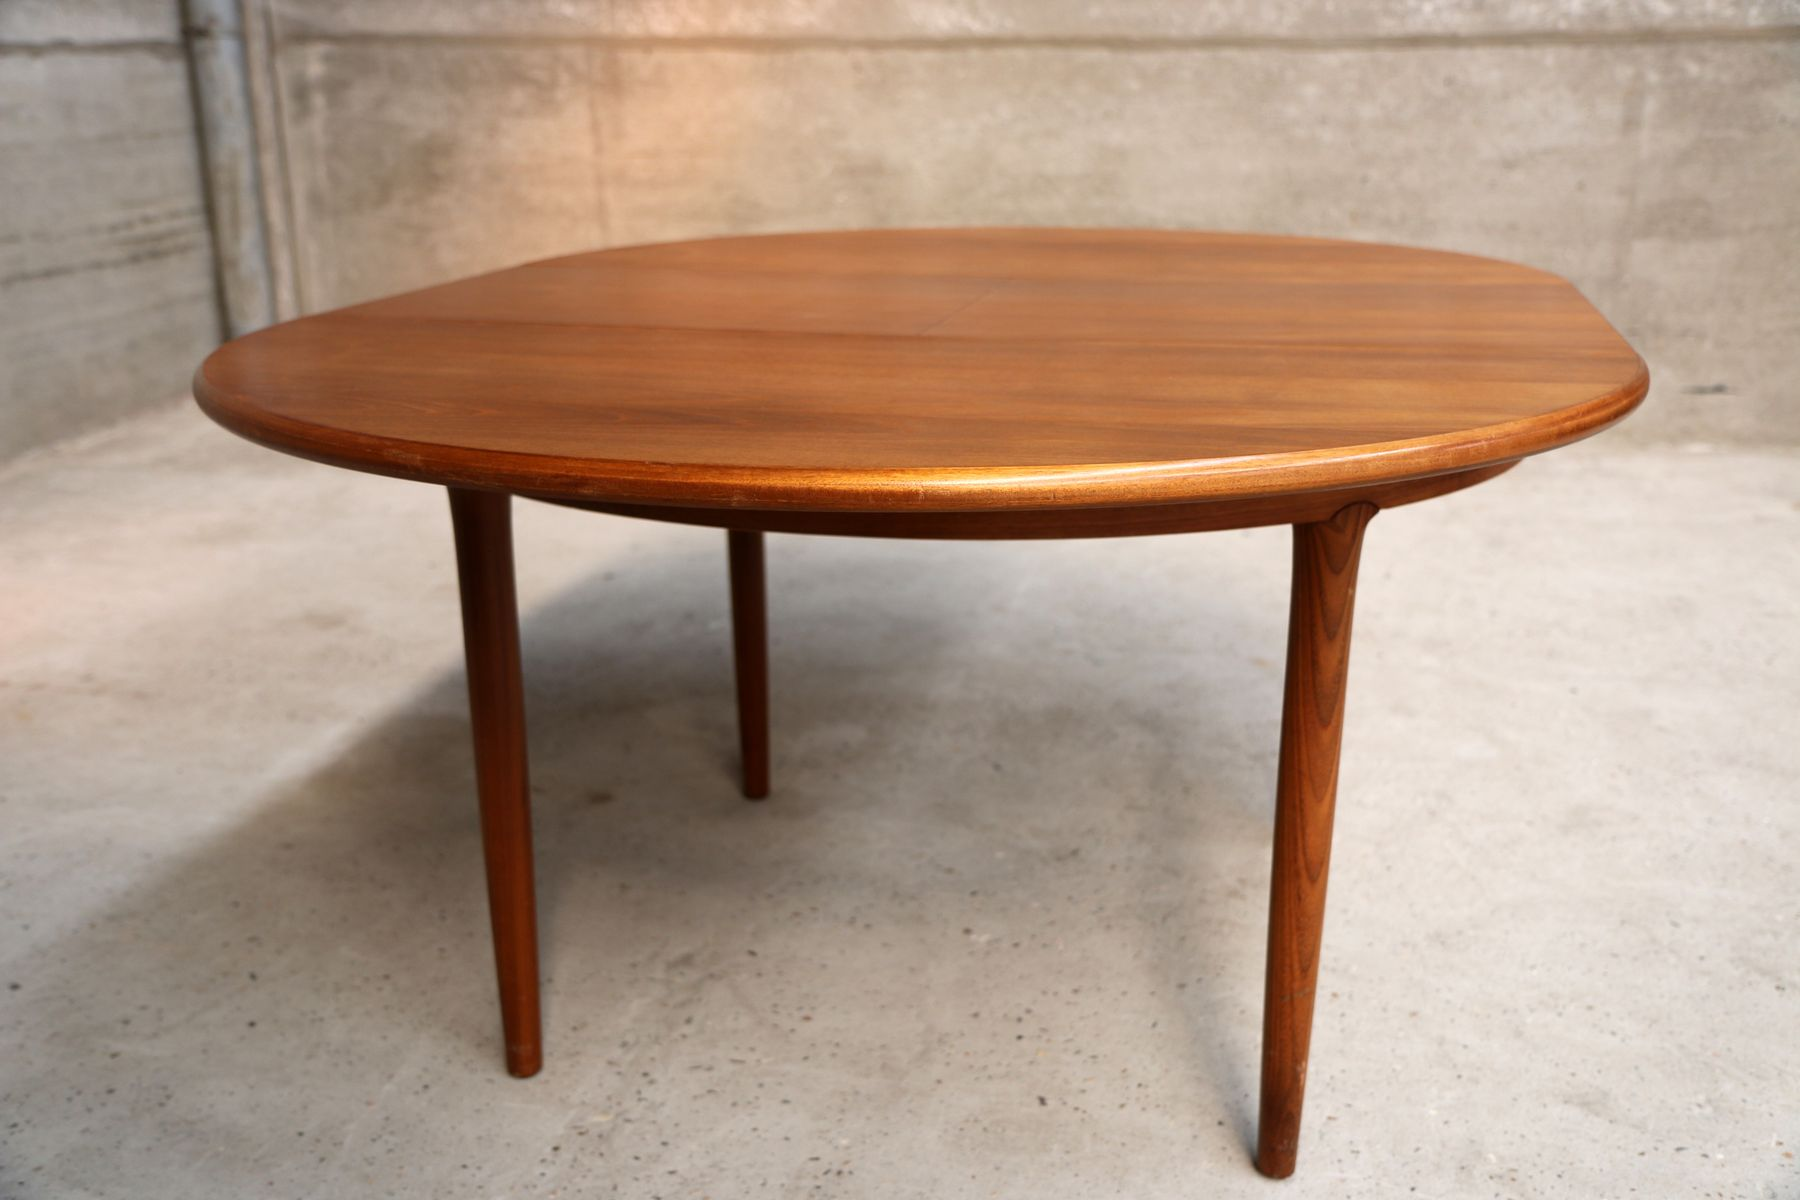 Scandinavian Style Vintage Extending Dining Table For Sale At Pamono